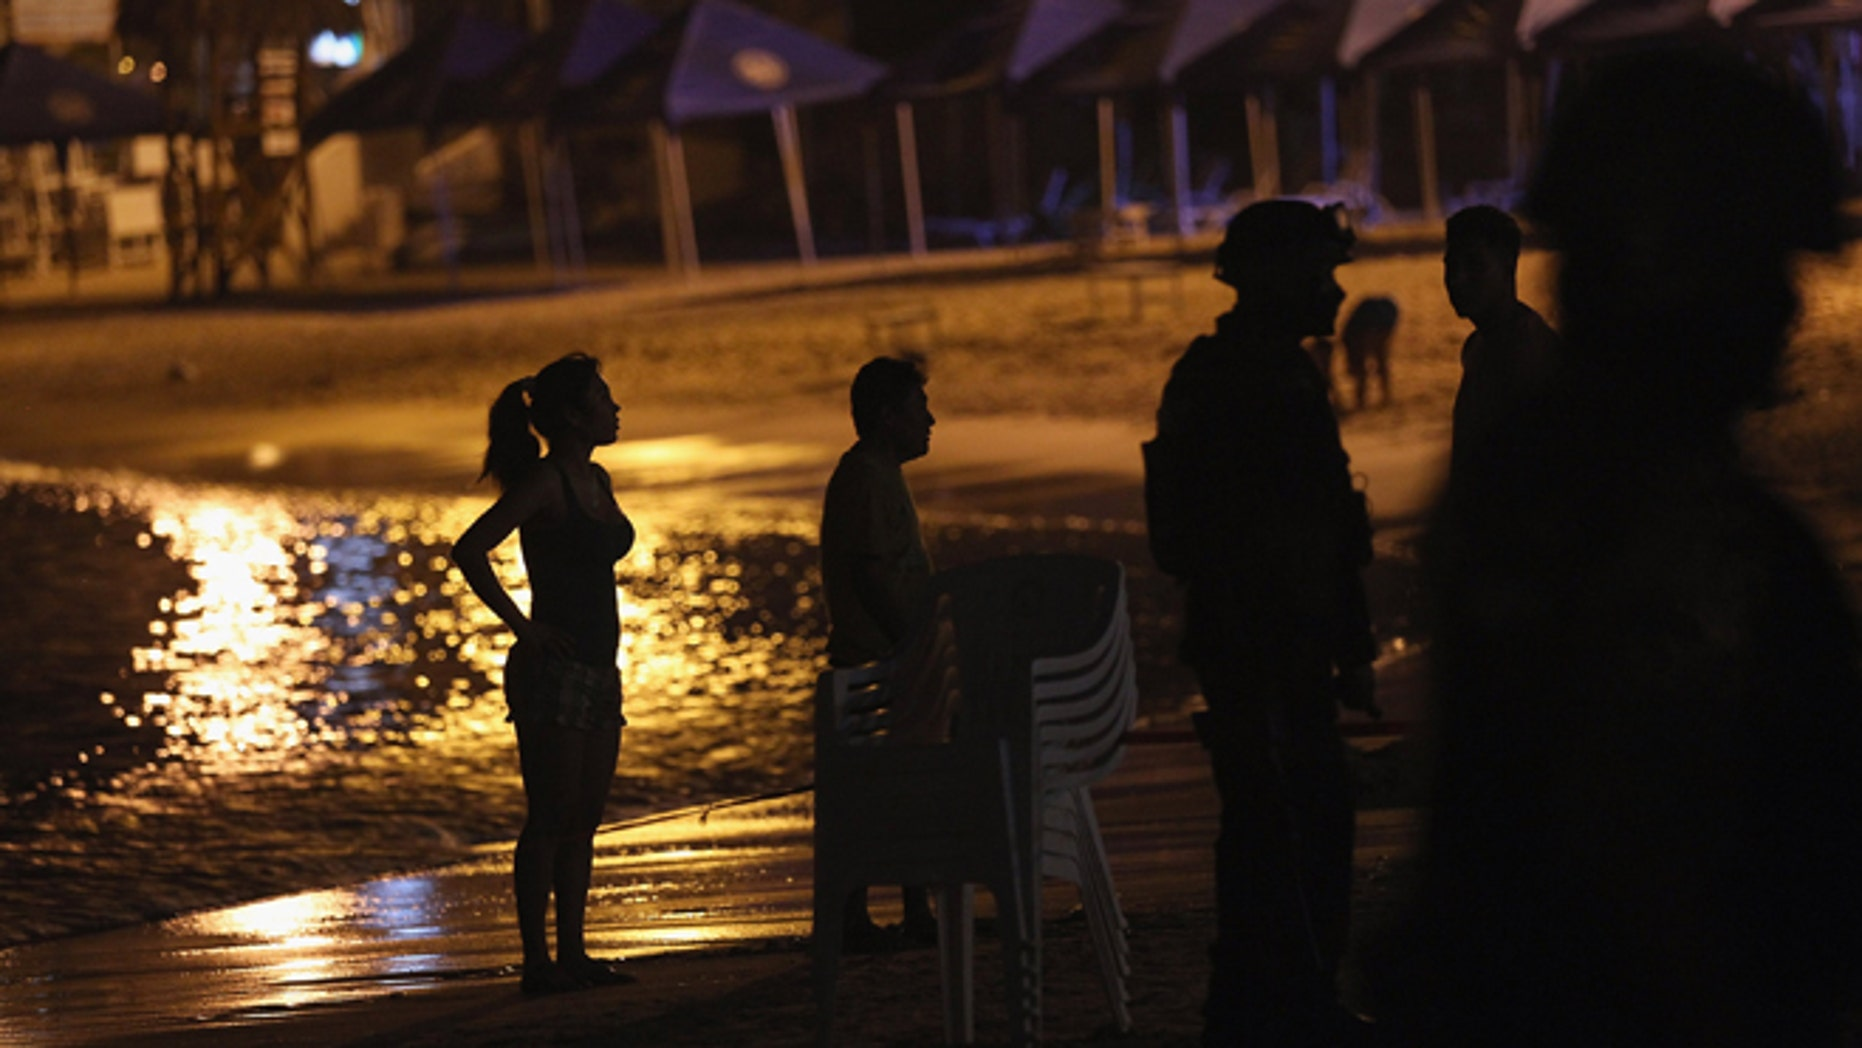 ACAPULCO, MEXICO - MARCH 04:  Mexican tourists and soldiers stand look on at the site of a suspected drug-related execution on Acapulco's famous Caleta Beach on March 4, 2012 in Acapulco, Mexico. Drug violence has surged in the coastal resort in the last year, making Acapulco the second most deadly city in Mexico after Juarez. One of Mexico's top tourist destinations, Acapulco has suffered a drop in business, especially from foreign tourists, due to the violence. Toursim accounts for about 70 percent of the economy of Acapulco's state of Guerrero and 9 percent of Mexico's economy.  (Photo by John Moore/Getty Images)